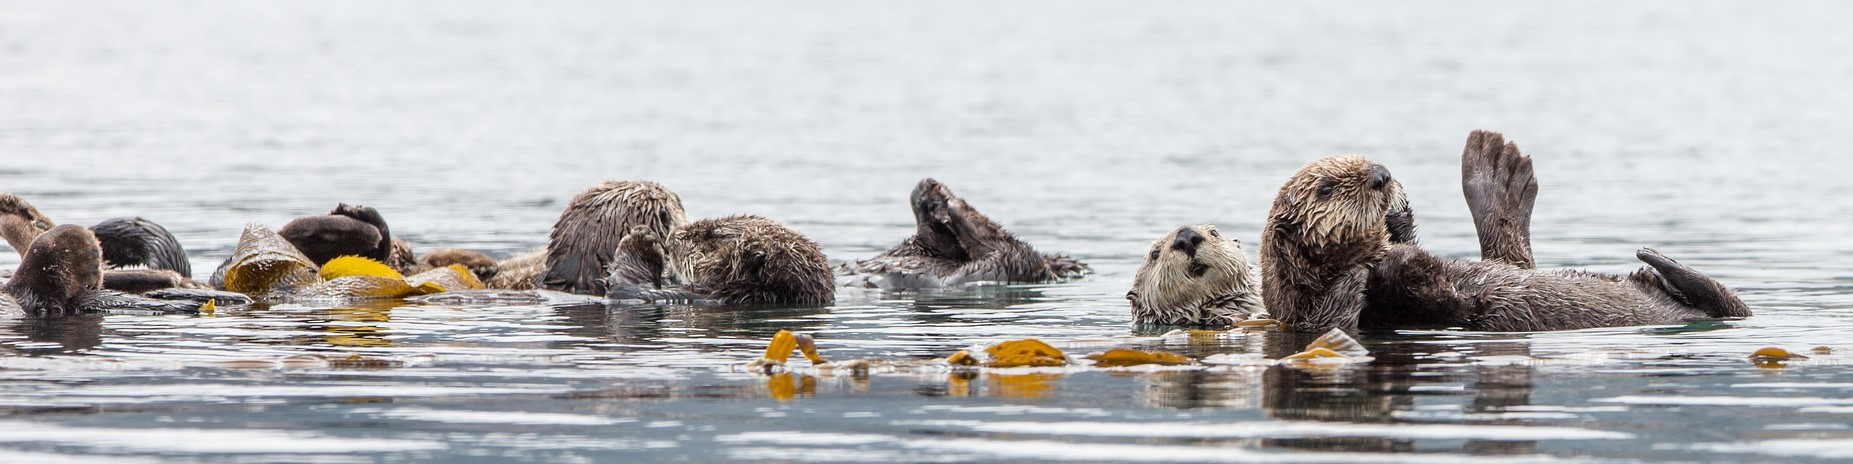 California Sea Otter Fund: Grant Applications Due September 7, 2018